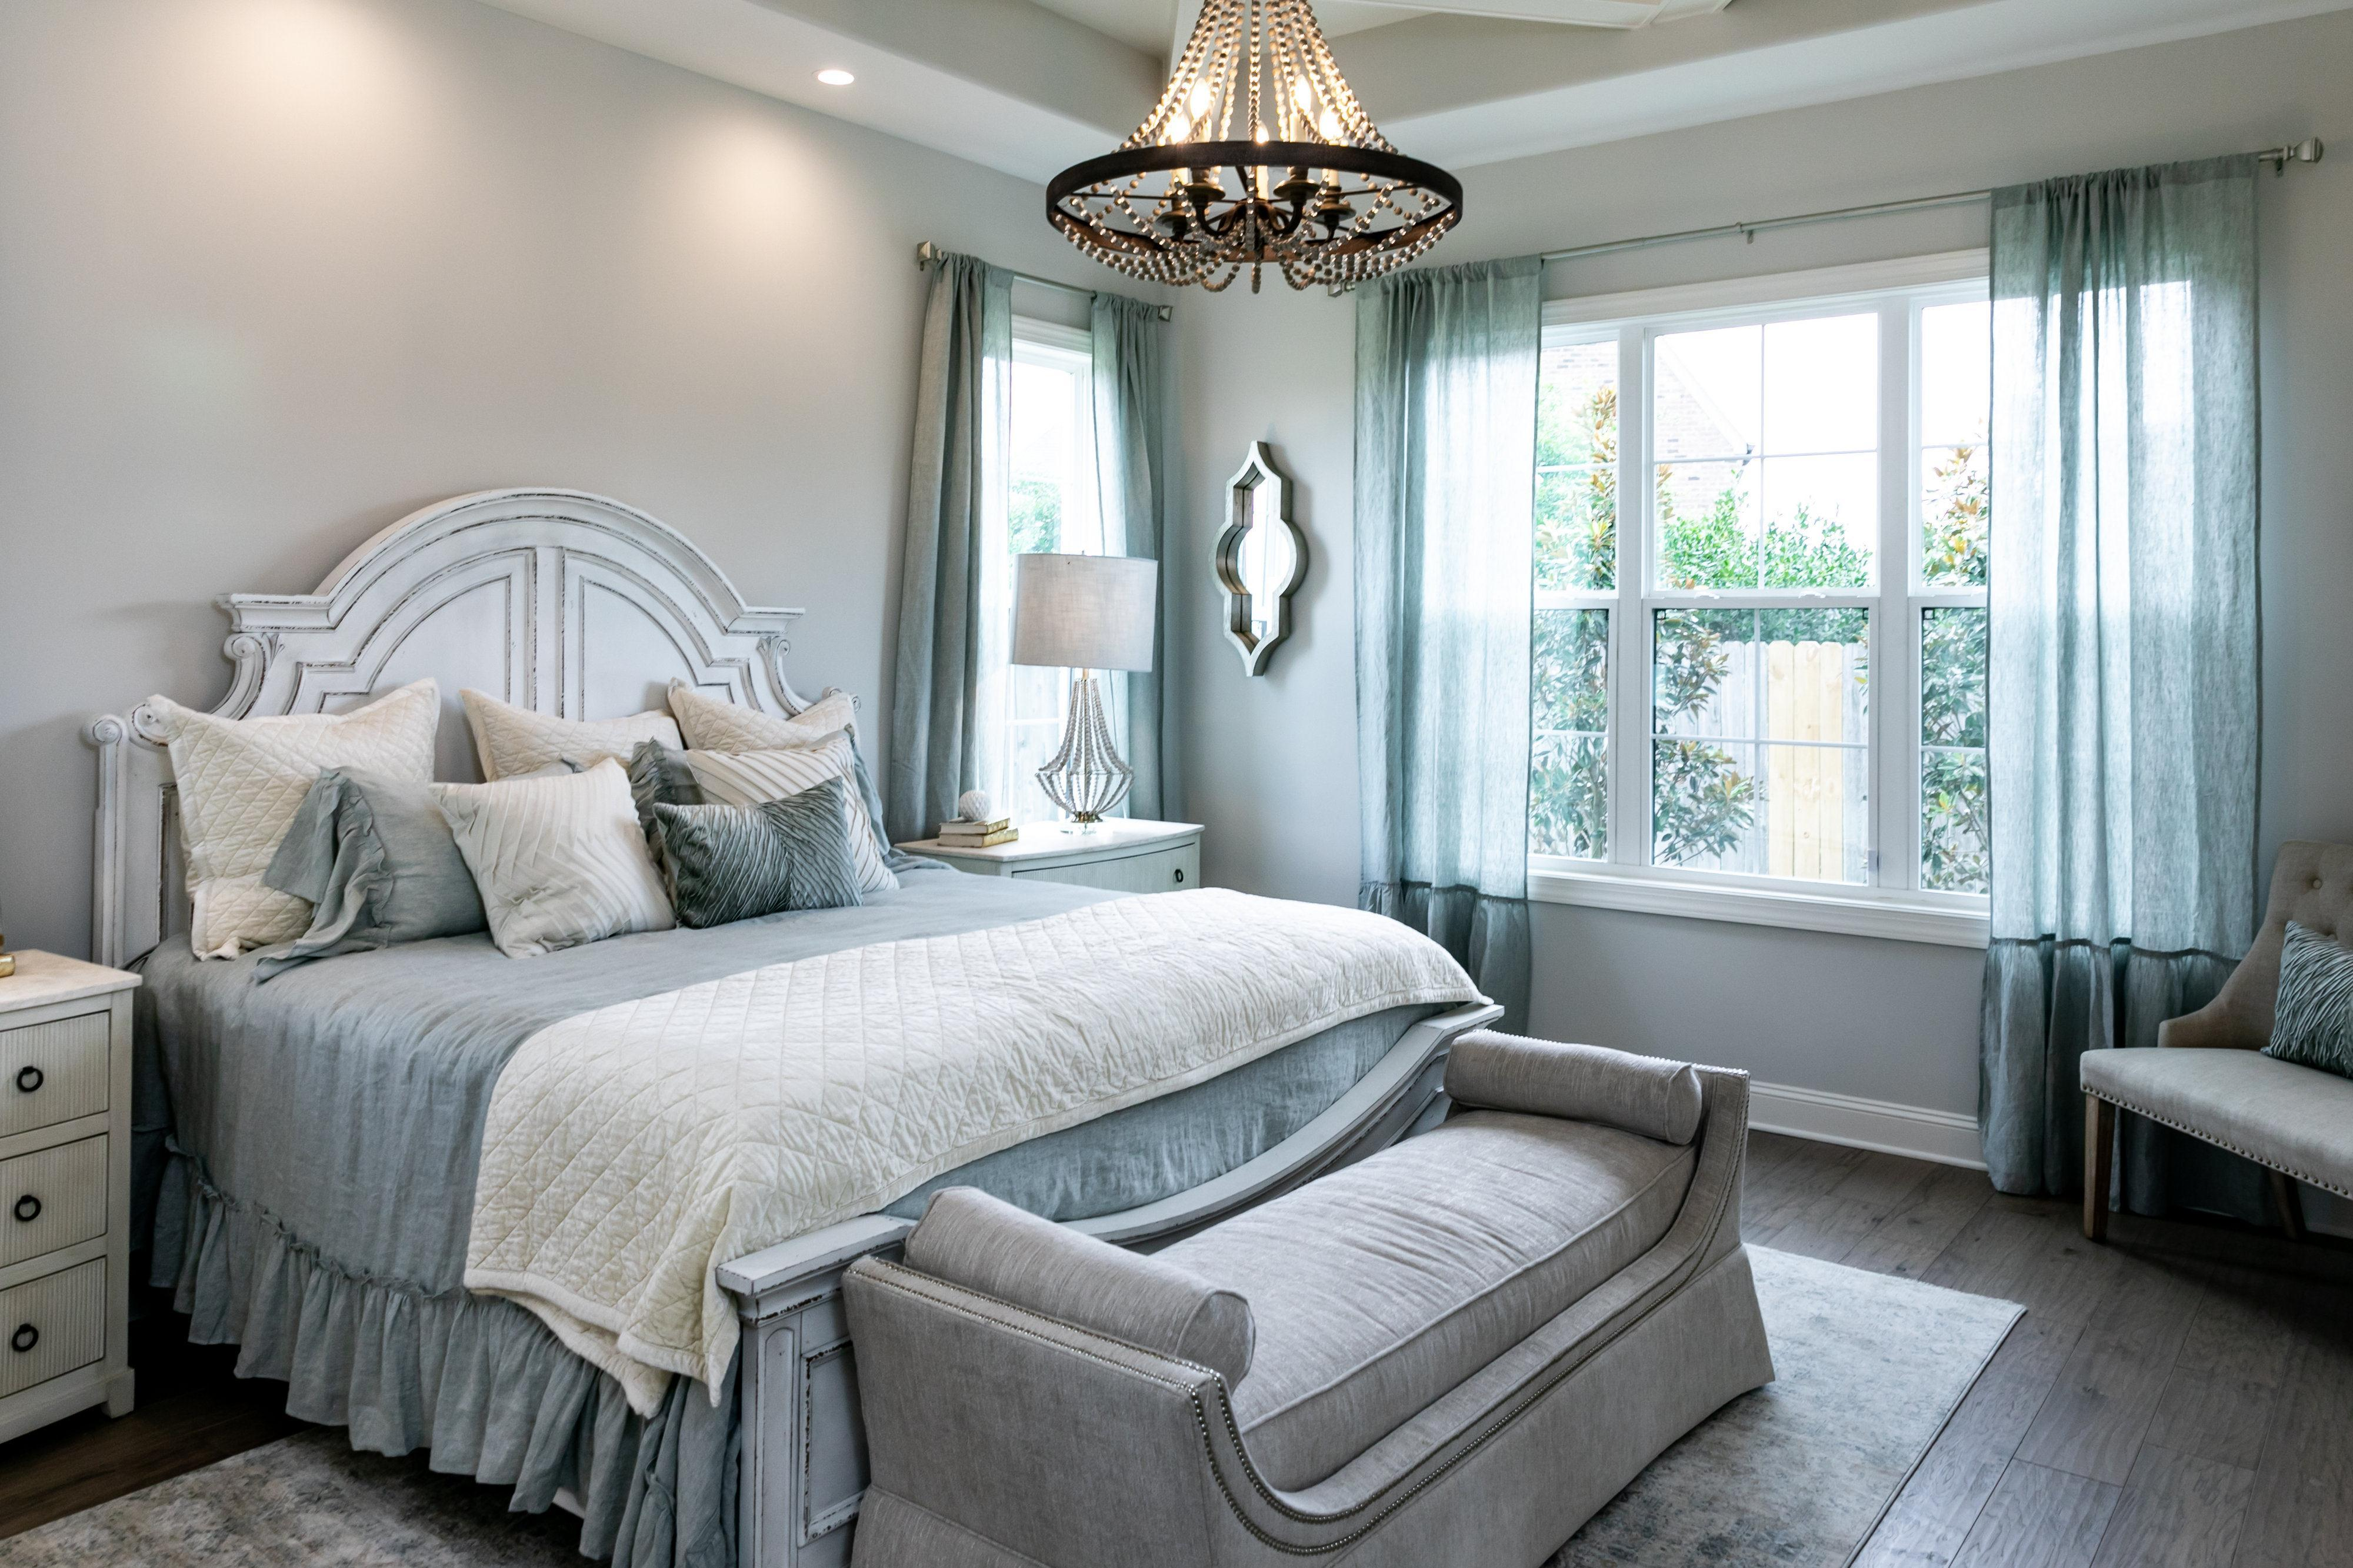 Bedroom featured in the Riverside By Regency Homebuilders in Memphis, TN